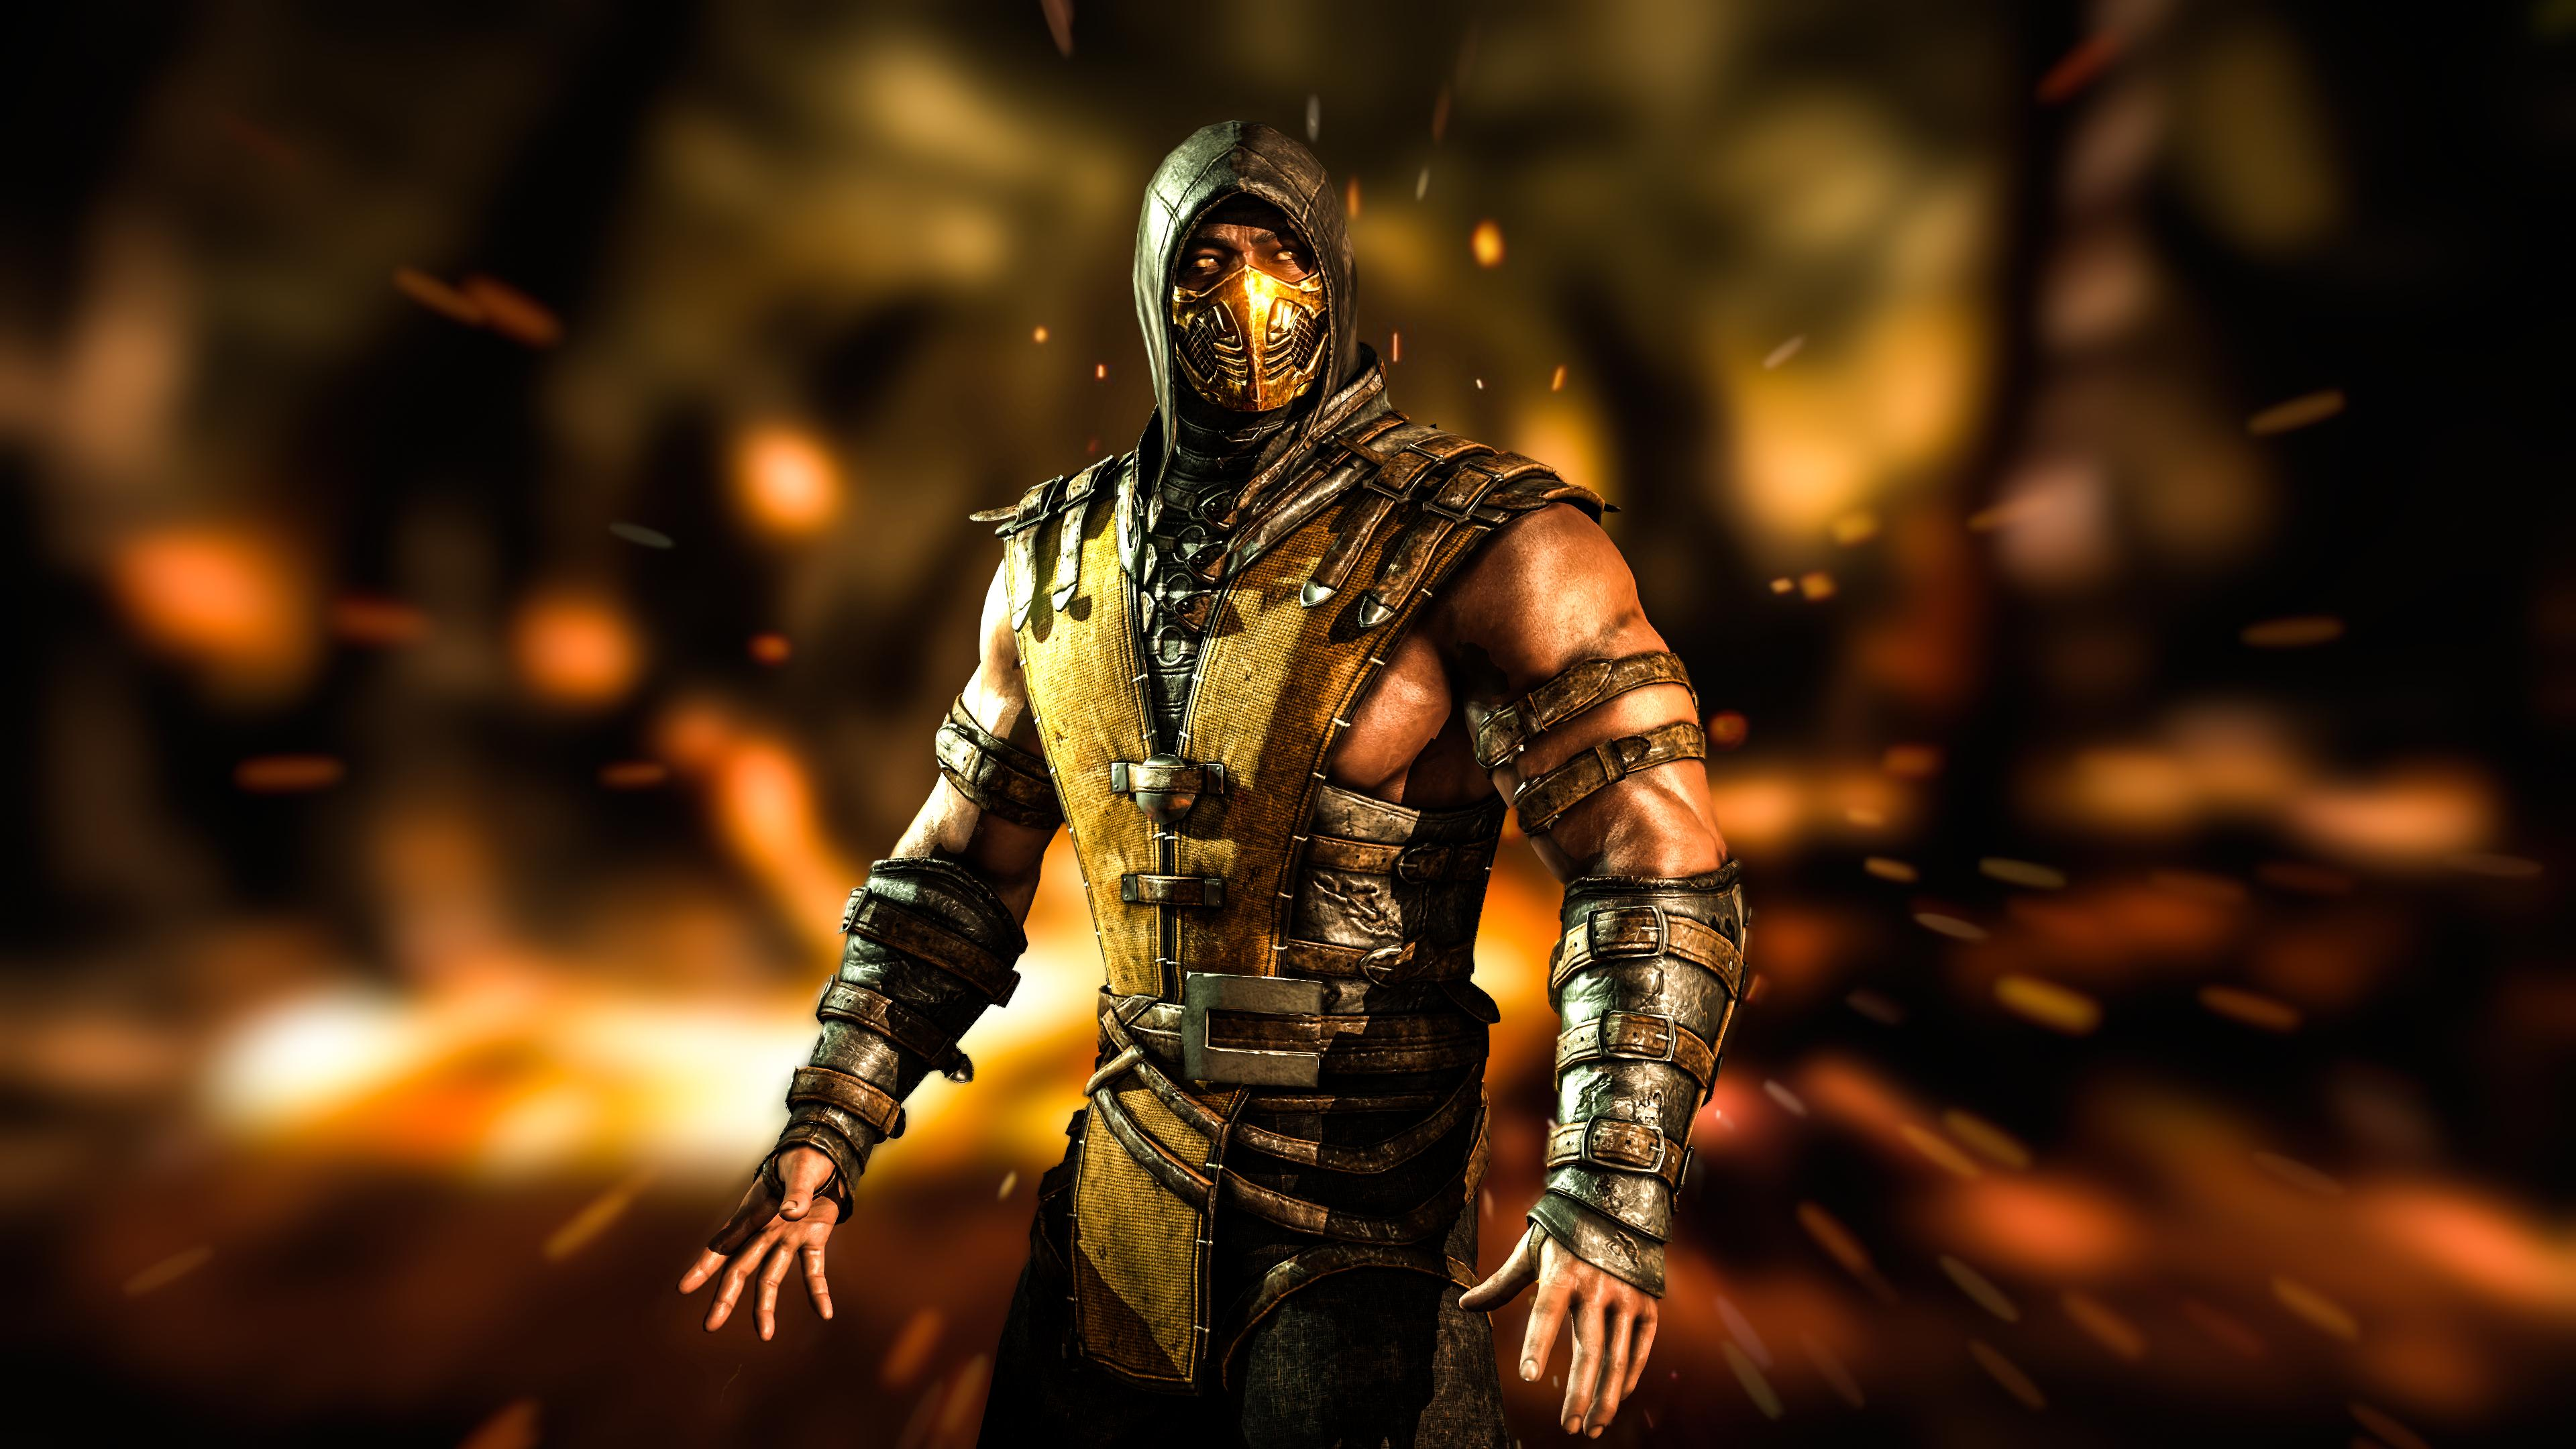 46+] 4K Mortal Kombat Wallpaper on WallpaperSafari